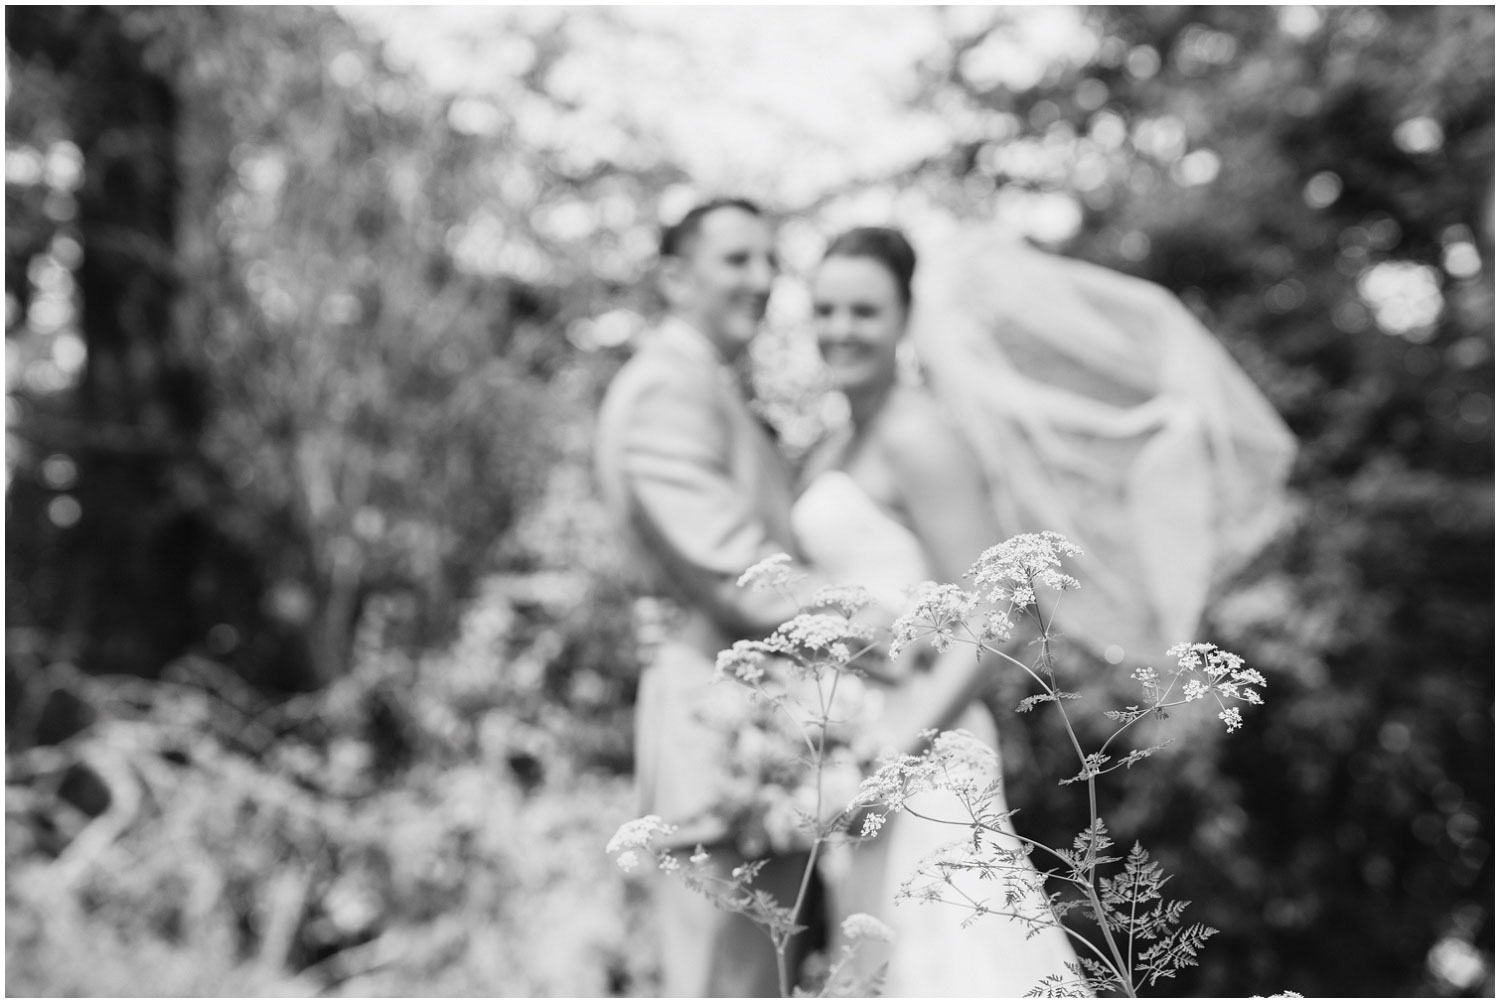 black and white portrait of bride and groom bokehed in background